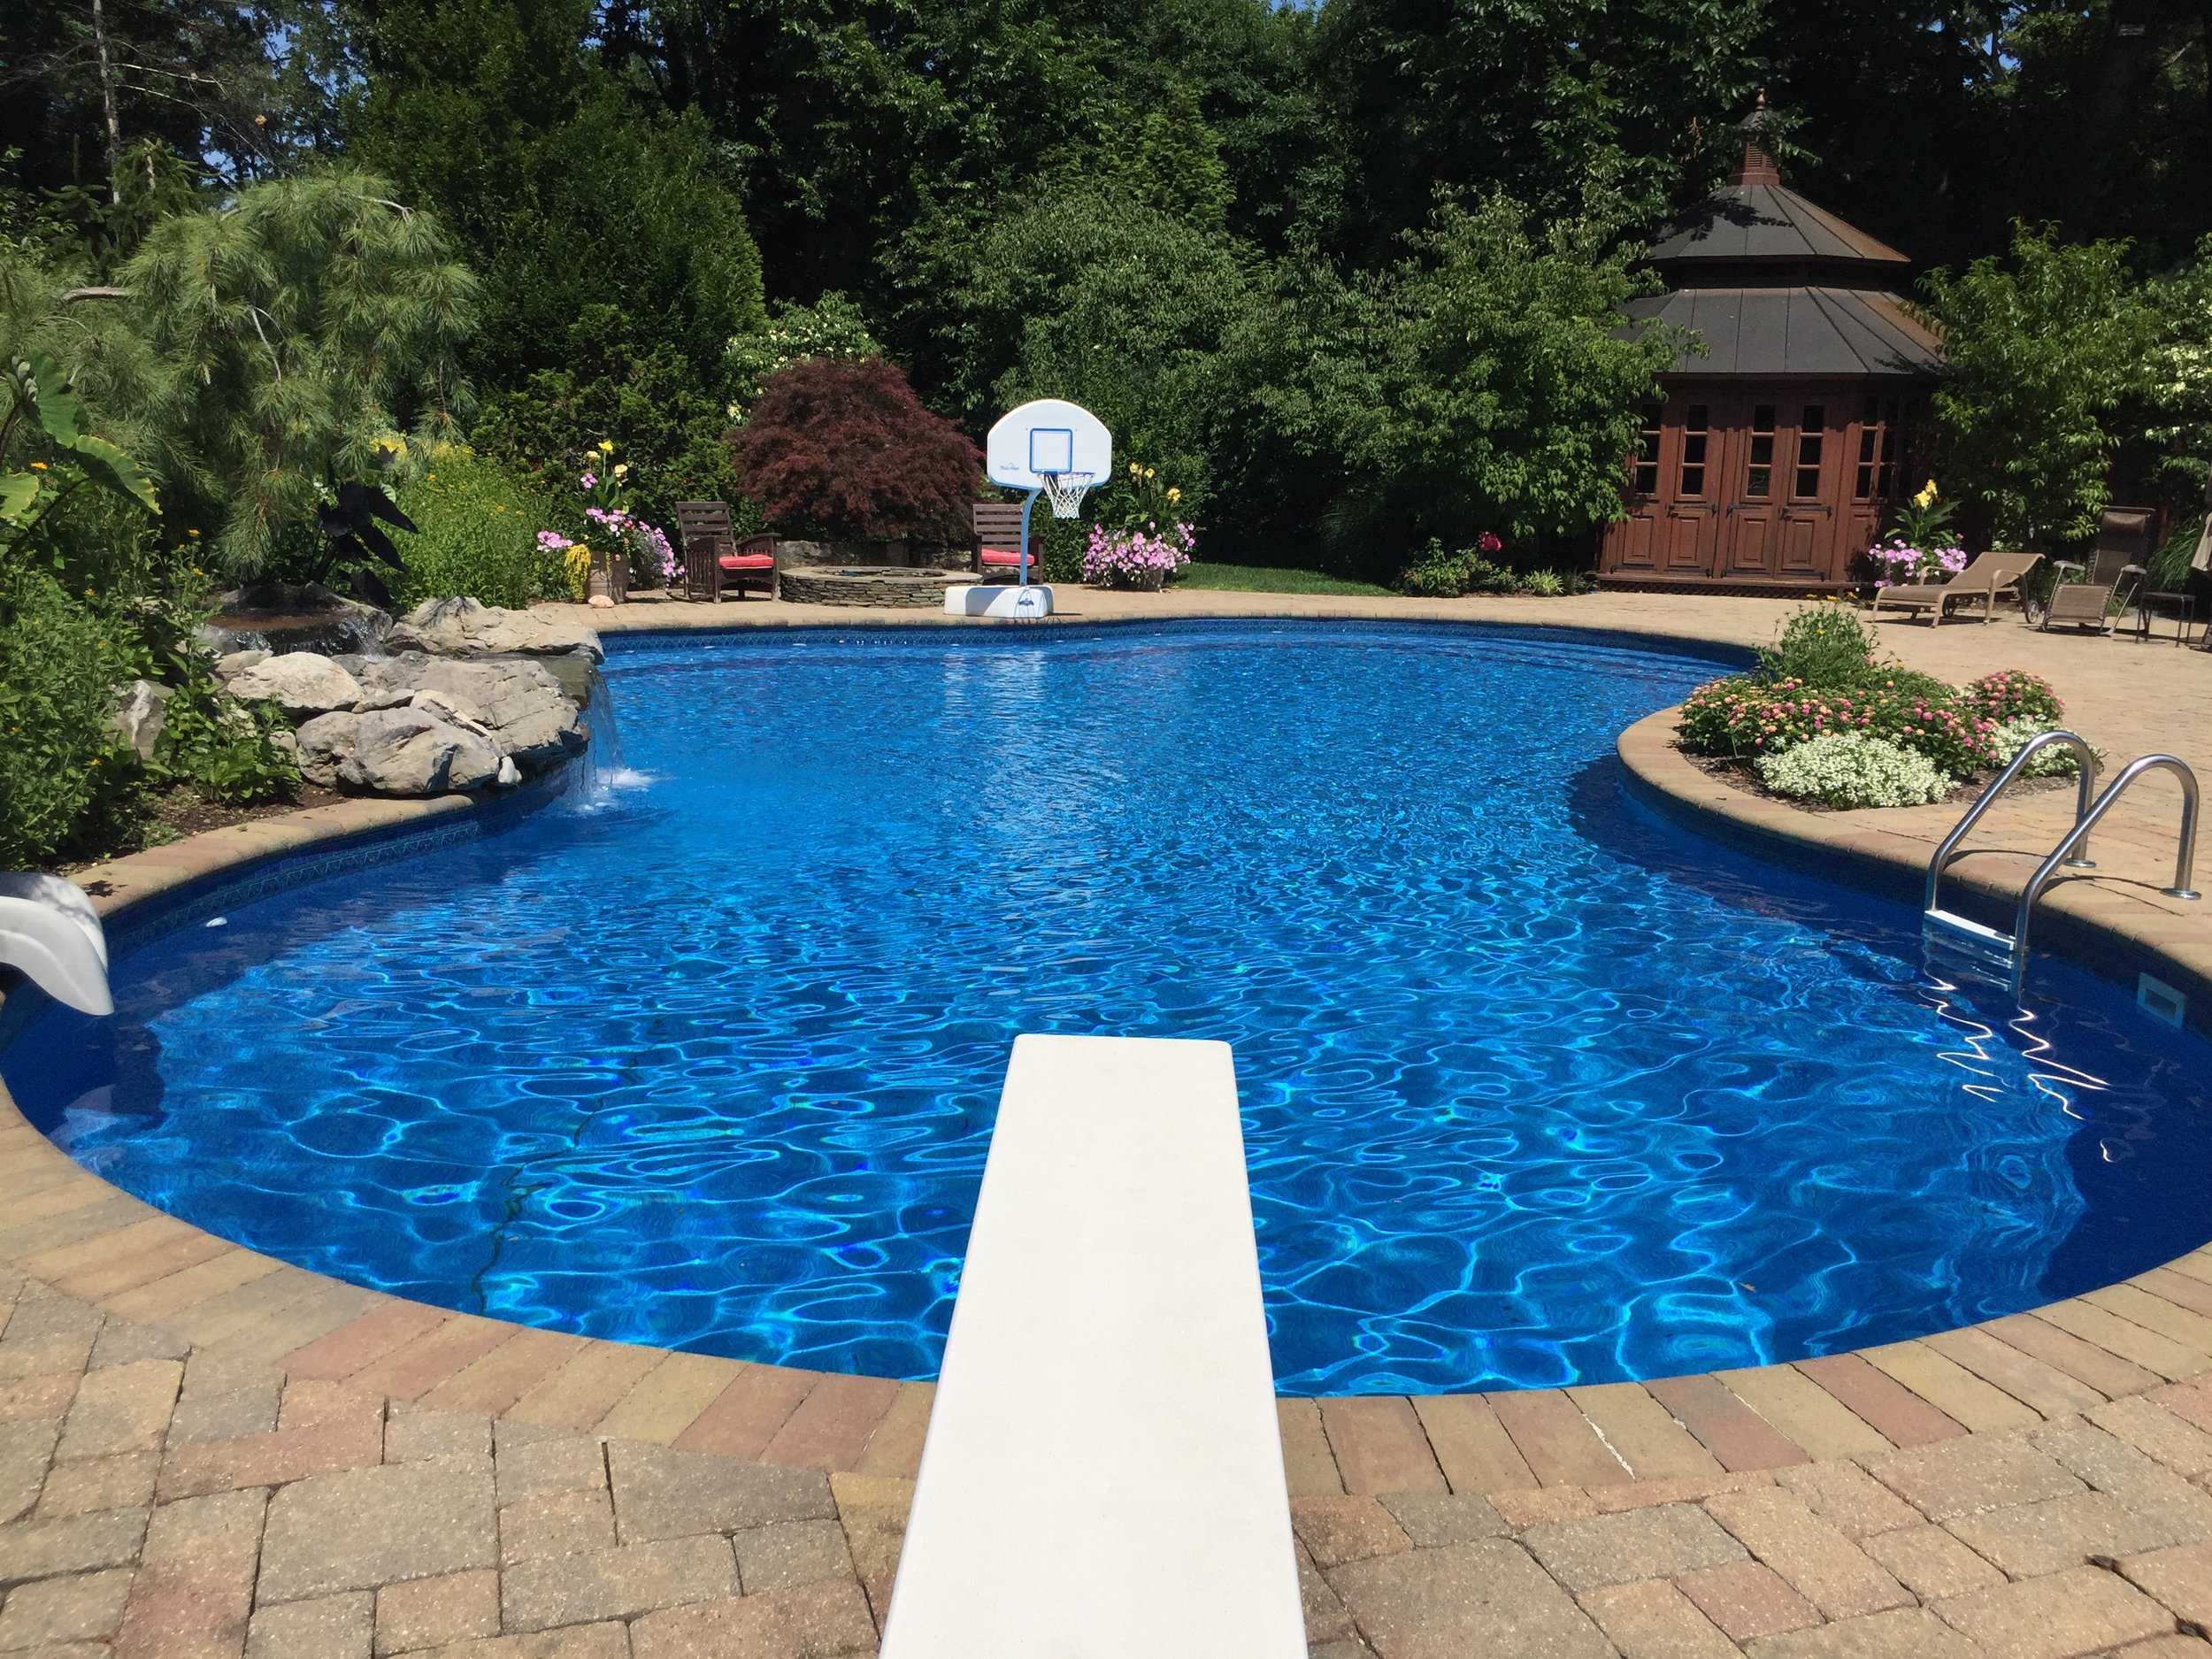 Top landscape design company with paved pool patioin Long Island, NY